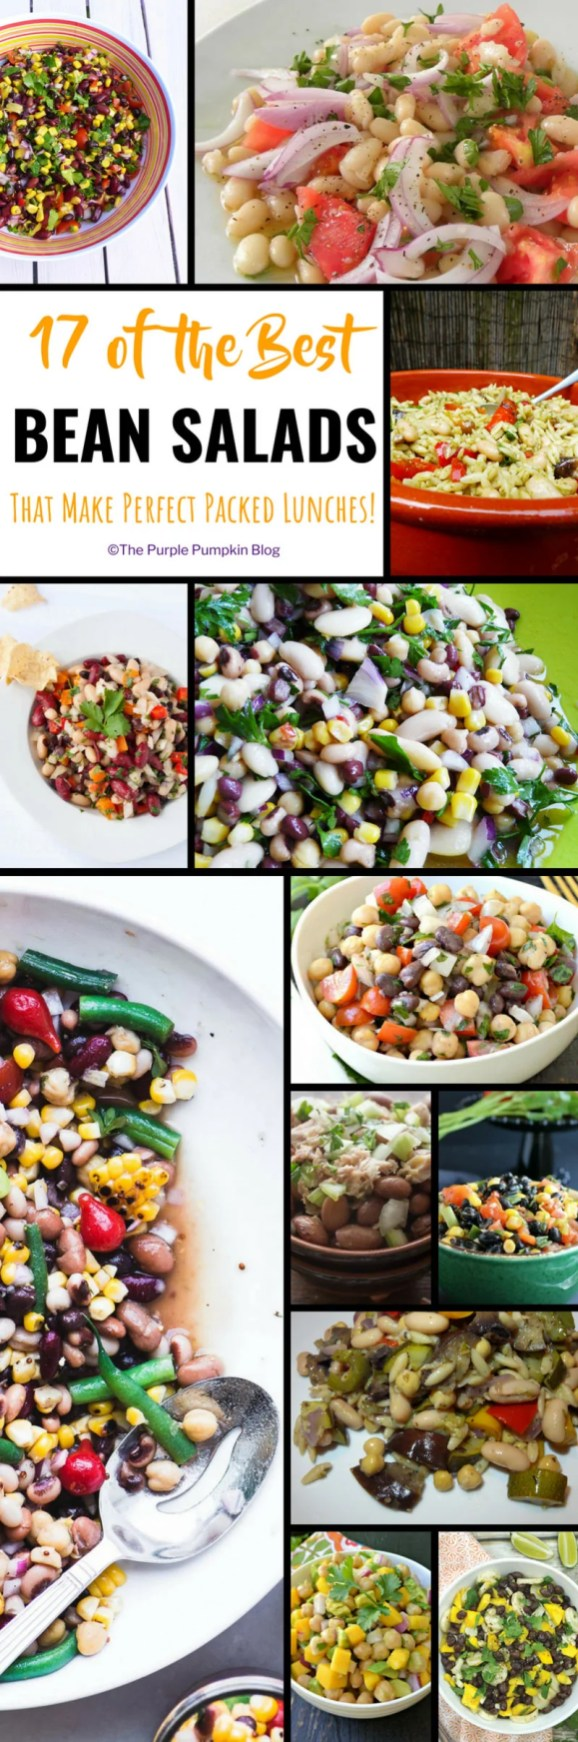 Do you find yourself having the same food for lunch, day in, day out? Stuck for ideas of what to prepare for packed lunches for work? You've hit the right spot on the internet because here are 17 of the best bead salads that are perfect for packed lunches!